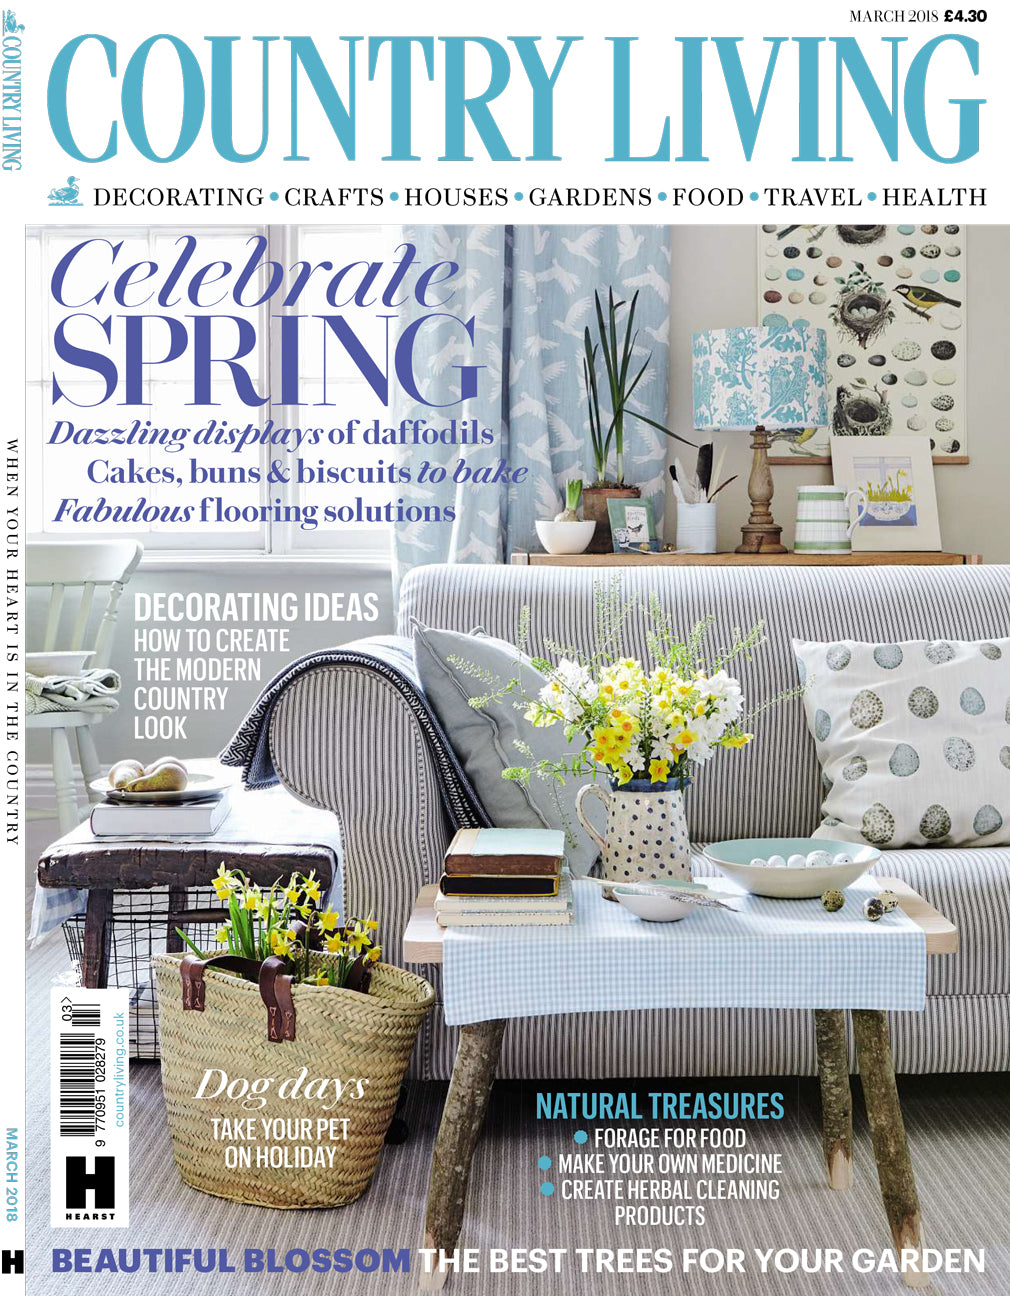 Country living tom raffield furniture and lighting